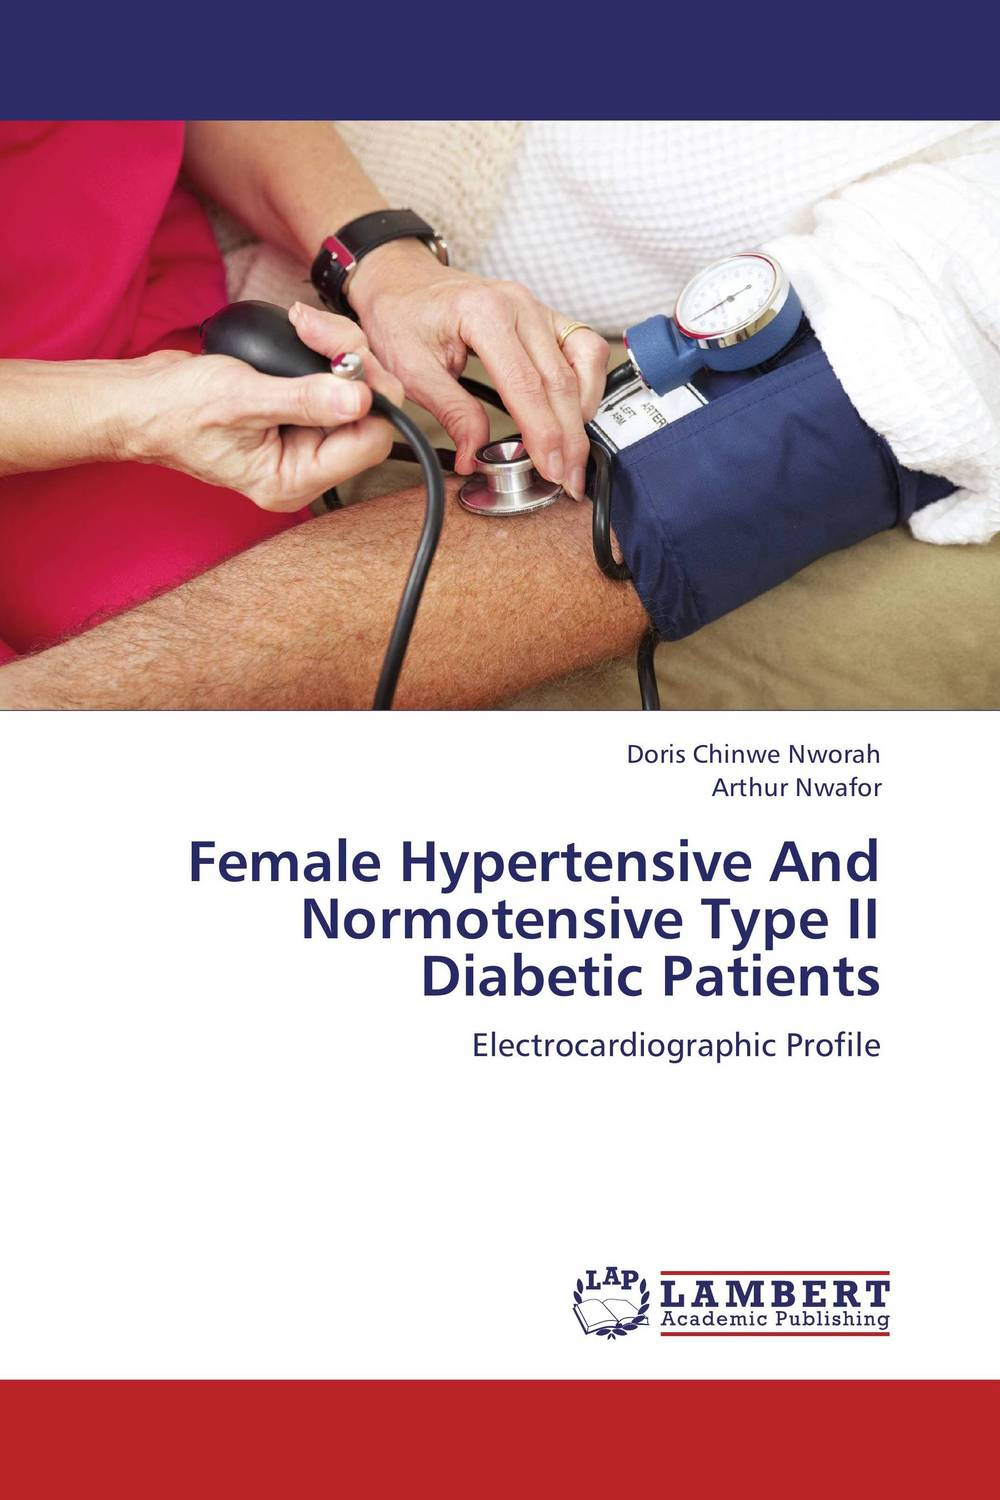 Female Hypertensive And Normotensive Type II Diabetic Patients effect of cyclooxygenase inhibitors on diabetic complications